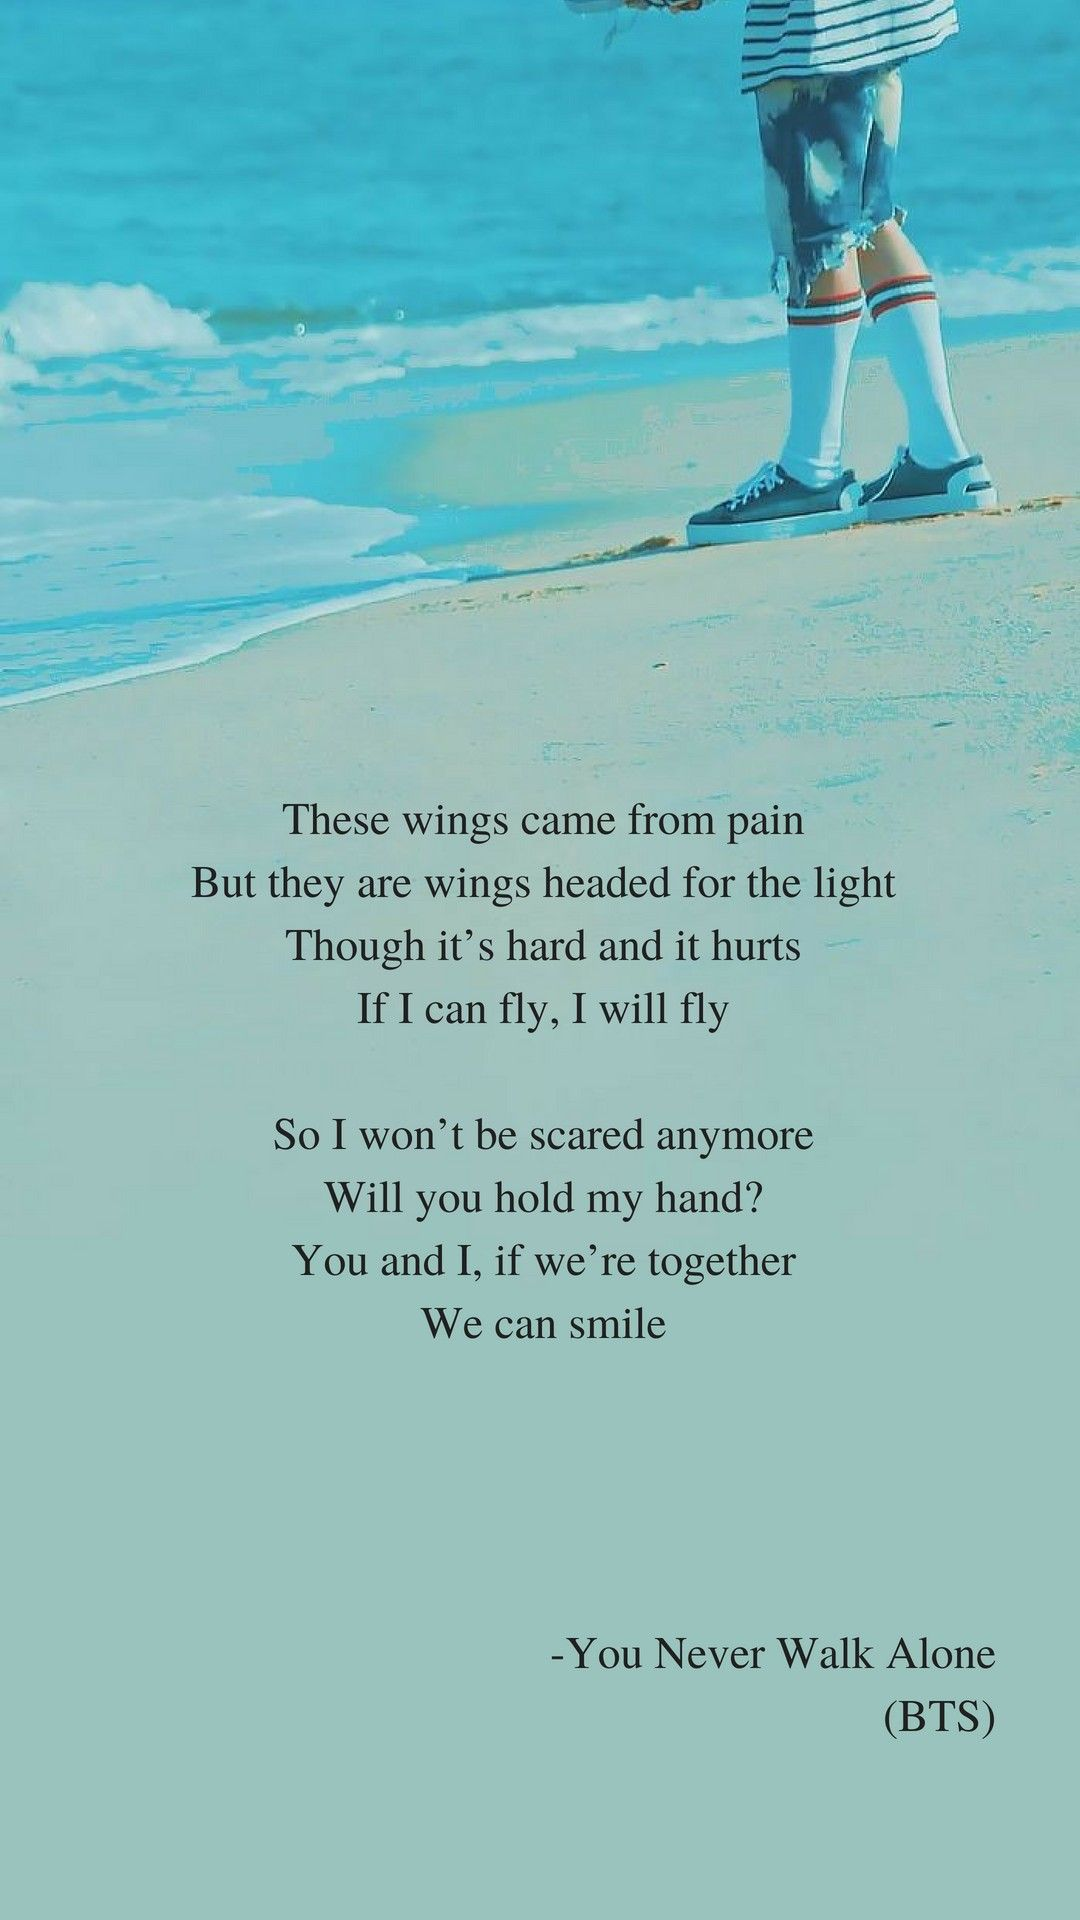 A supplementary story: You Never Walk Alone by BTS Lyrics wallpaper